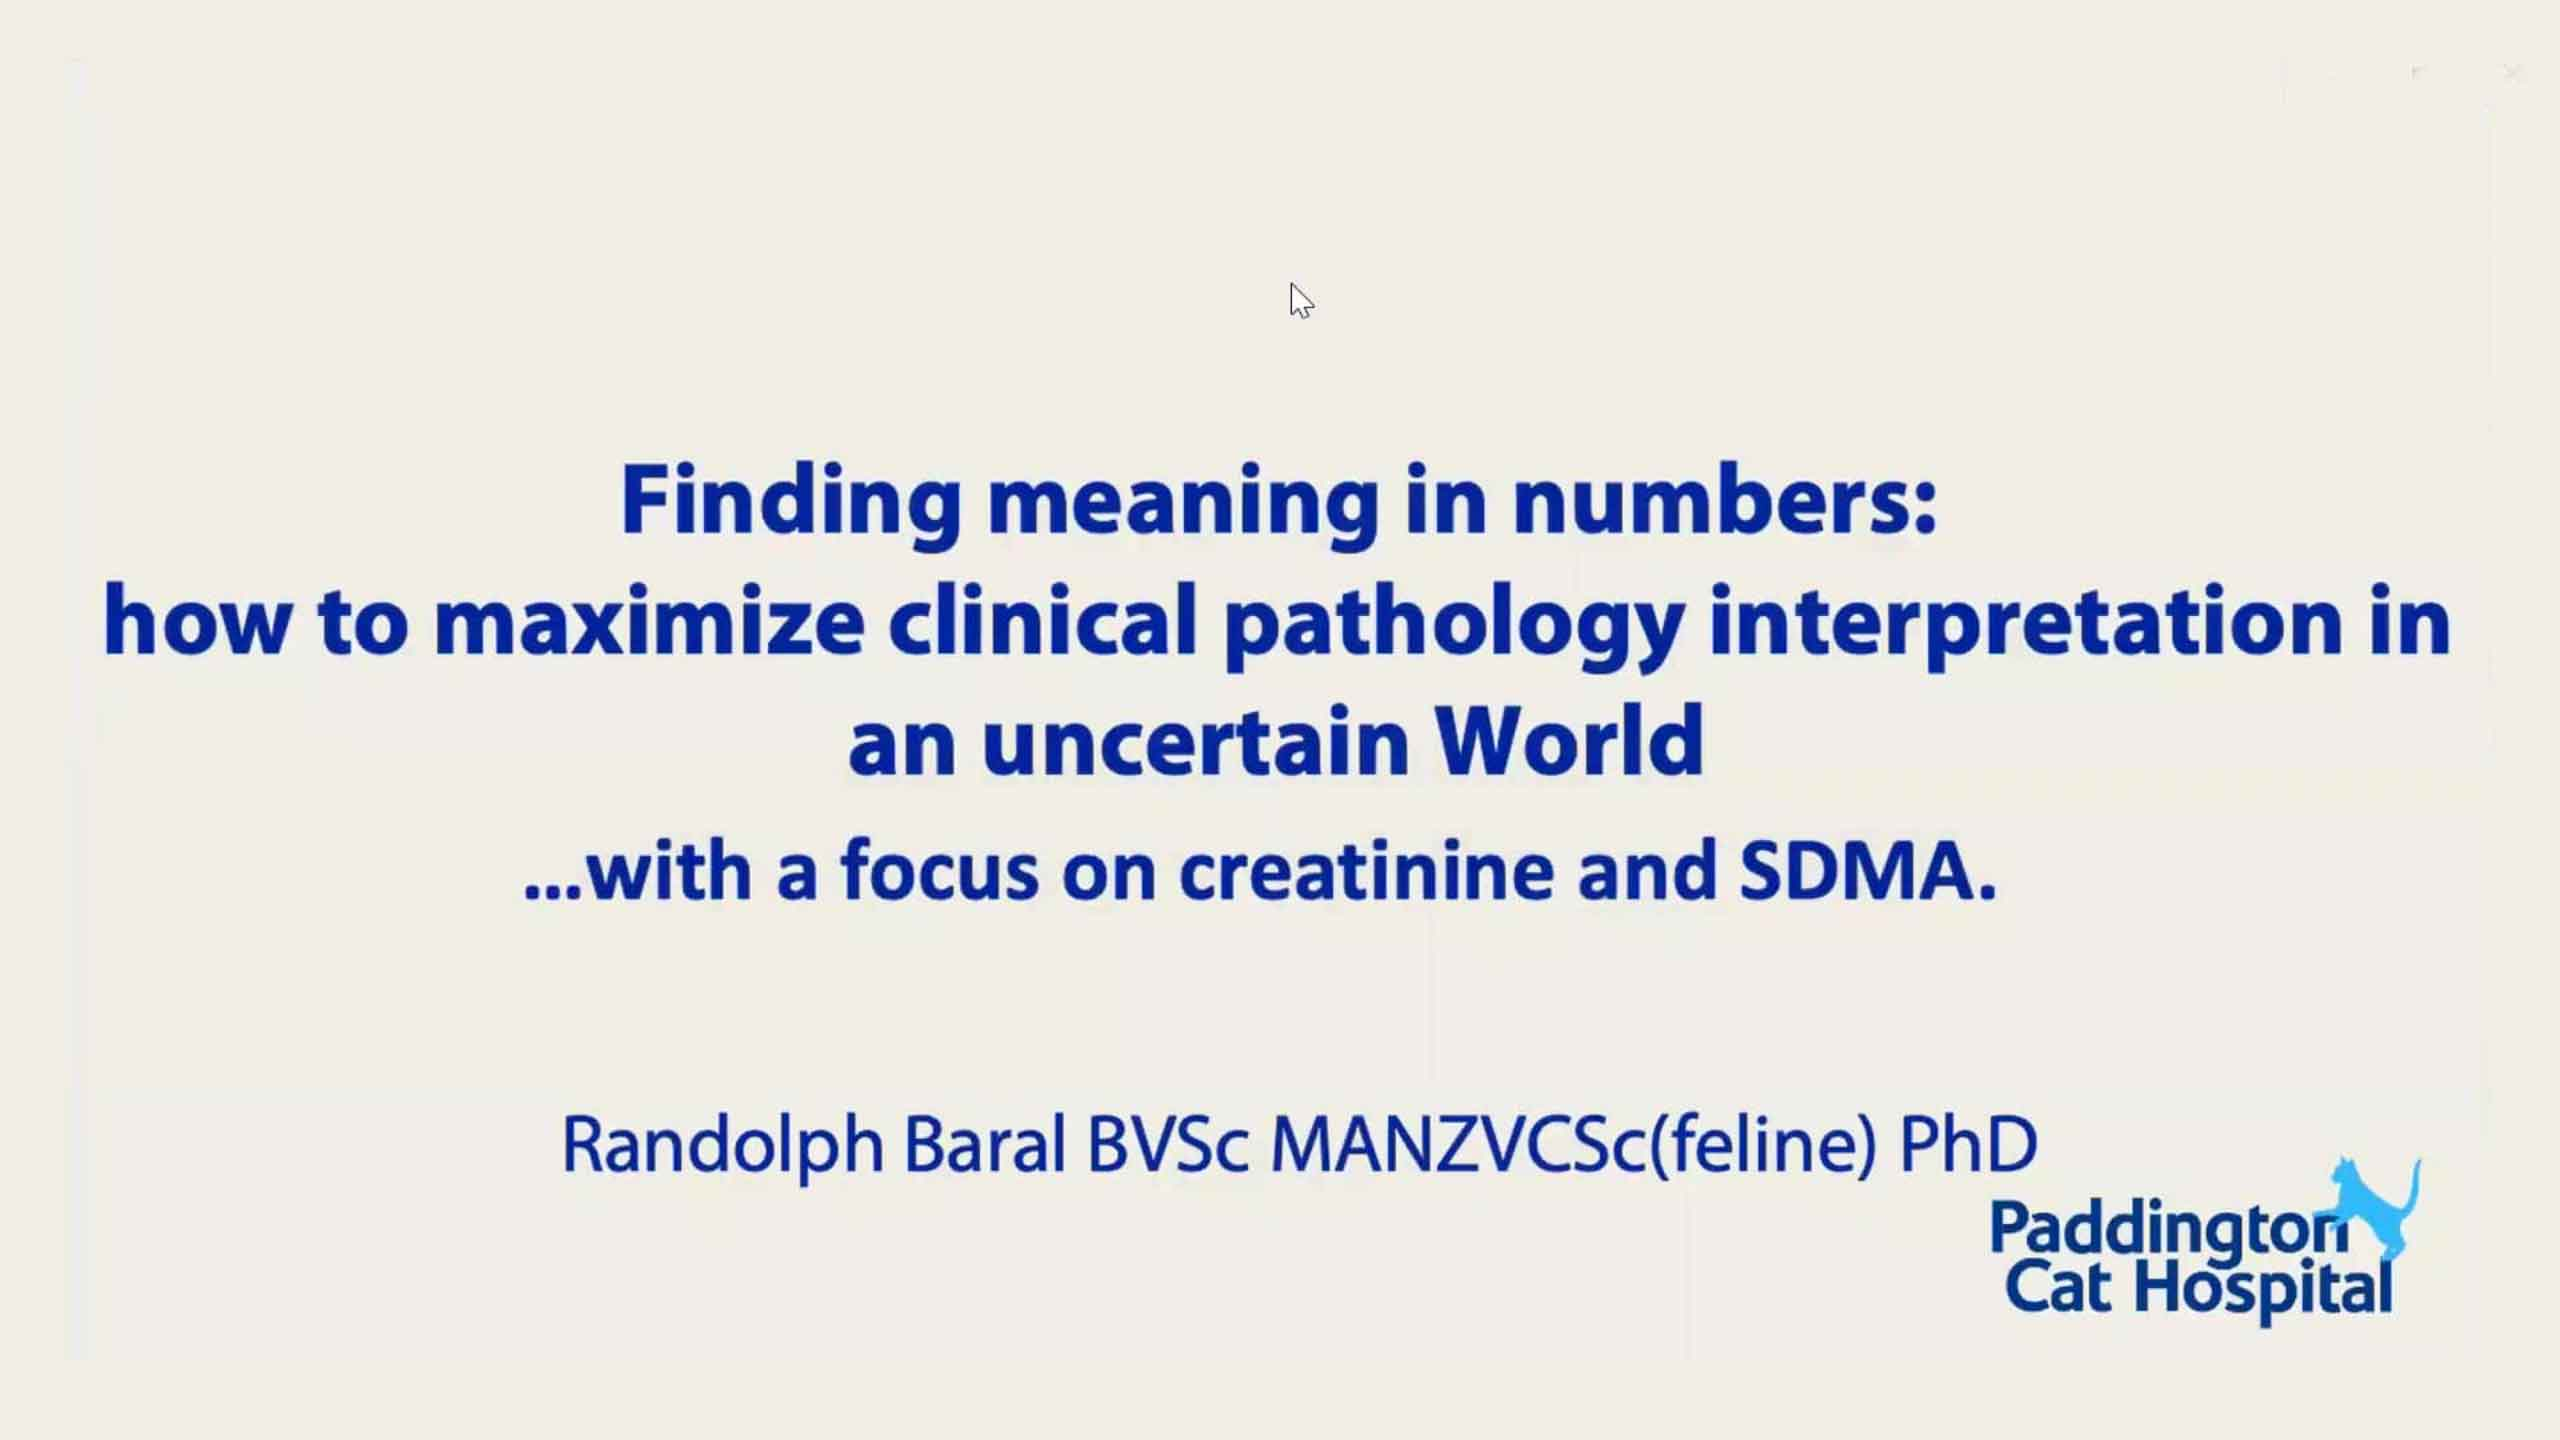 Finding meaning in numbers: SDMA and creatinine WebinarLIVE!